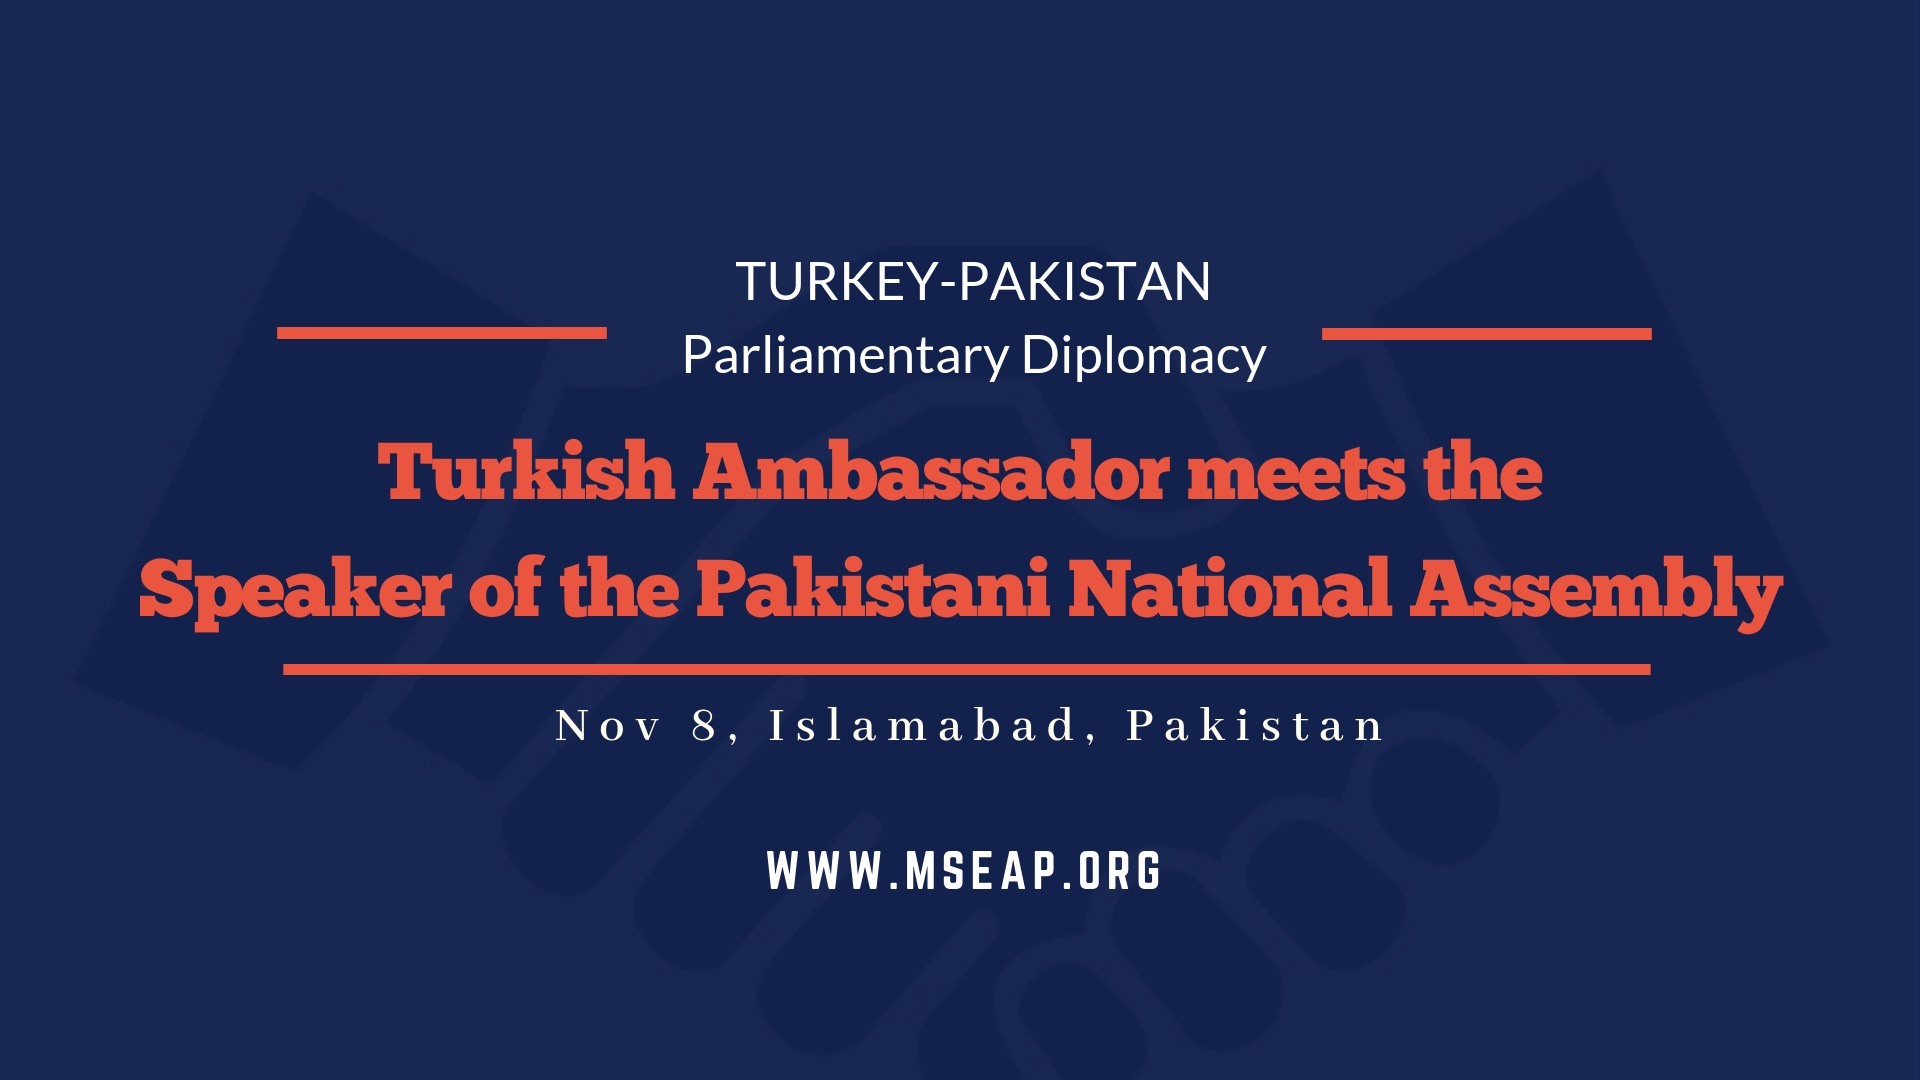 Turkish Ambassador meets the Speaker of the Pakistani National Assembly